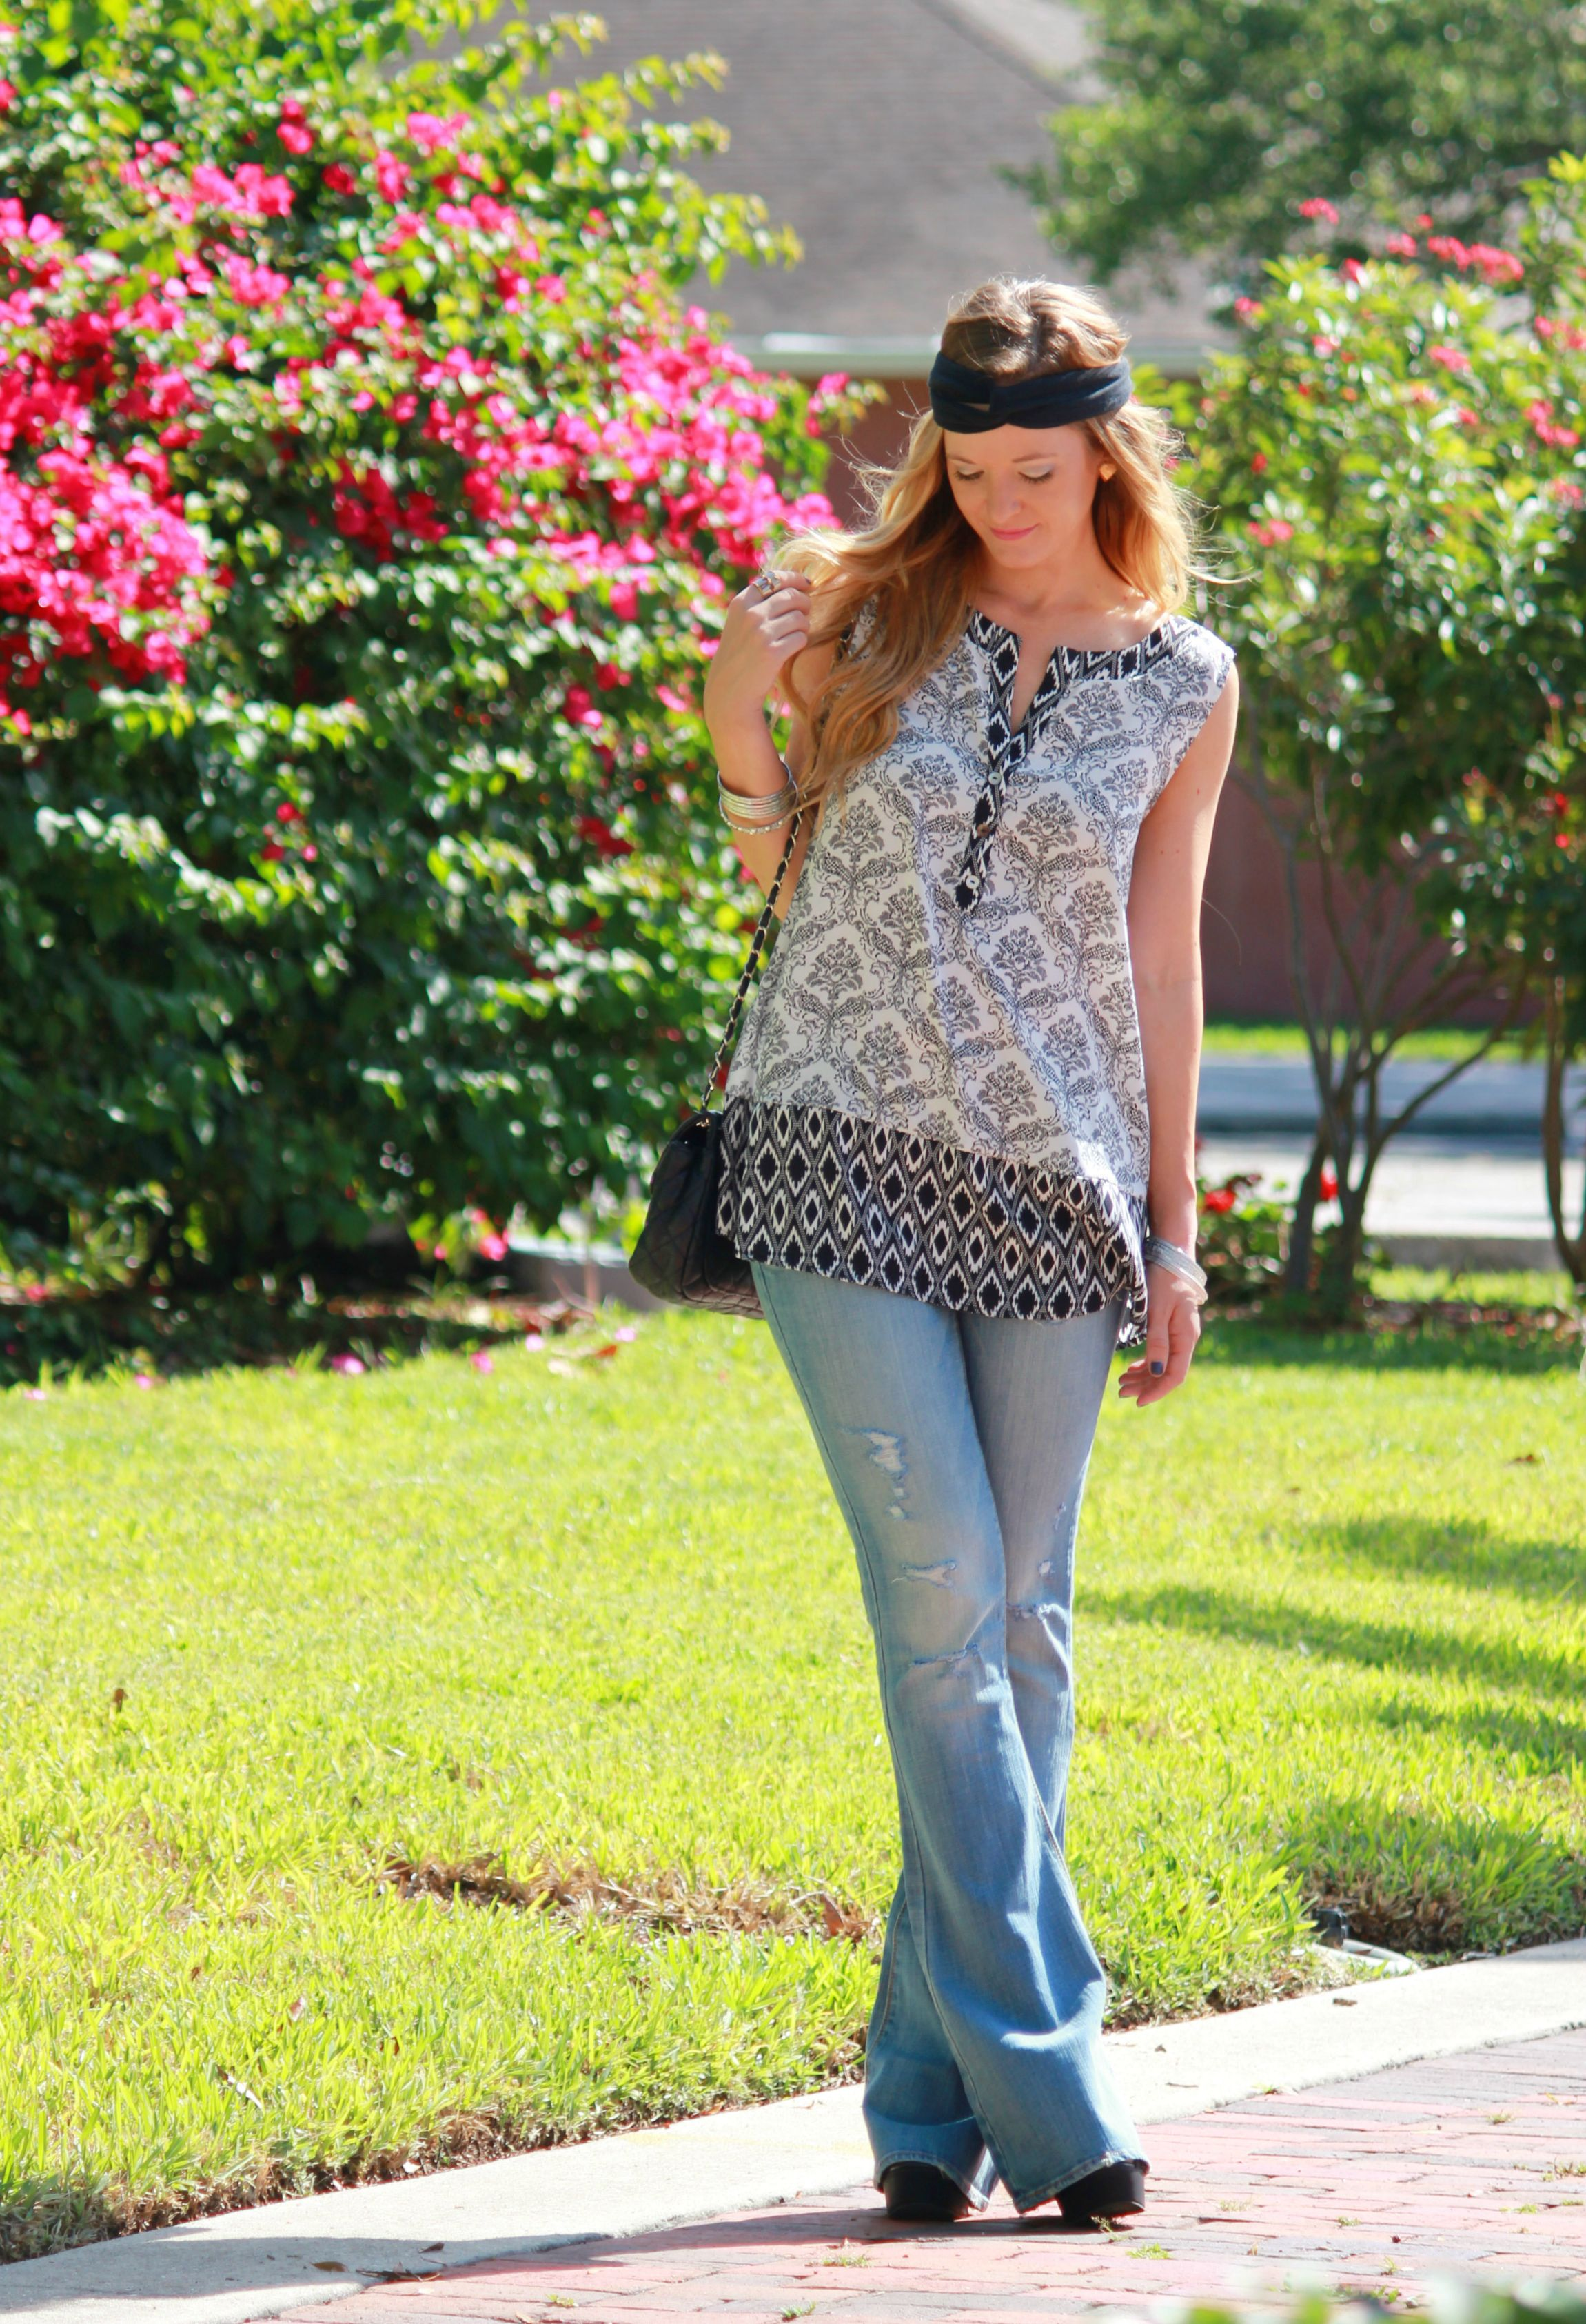 white plum top, damask top, baroque top, american eagle jeans, flared jeans, quilted bag, summer outfit, casual summer outfit